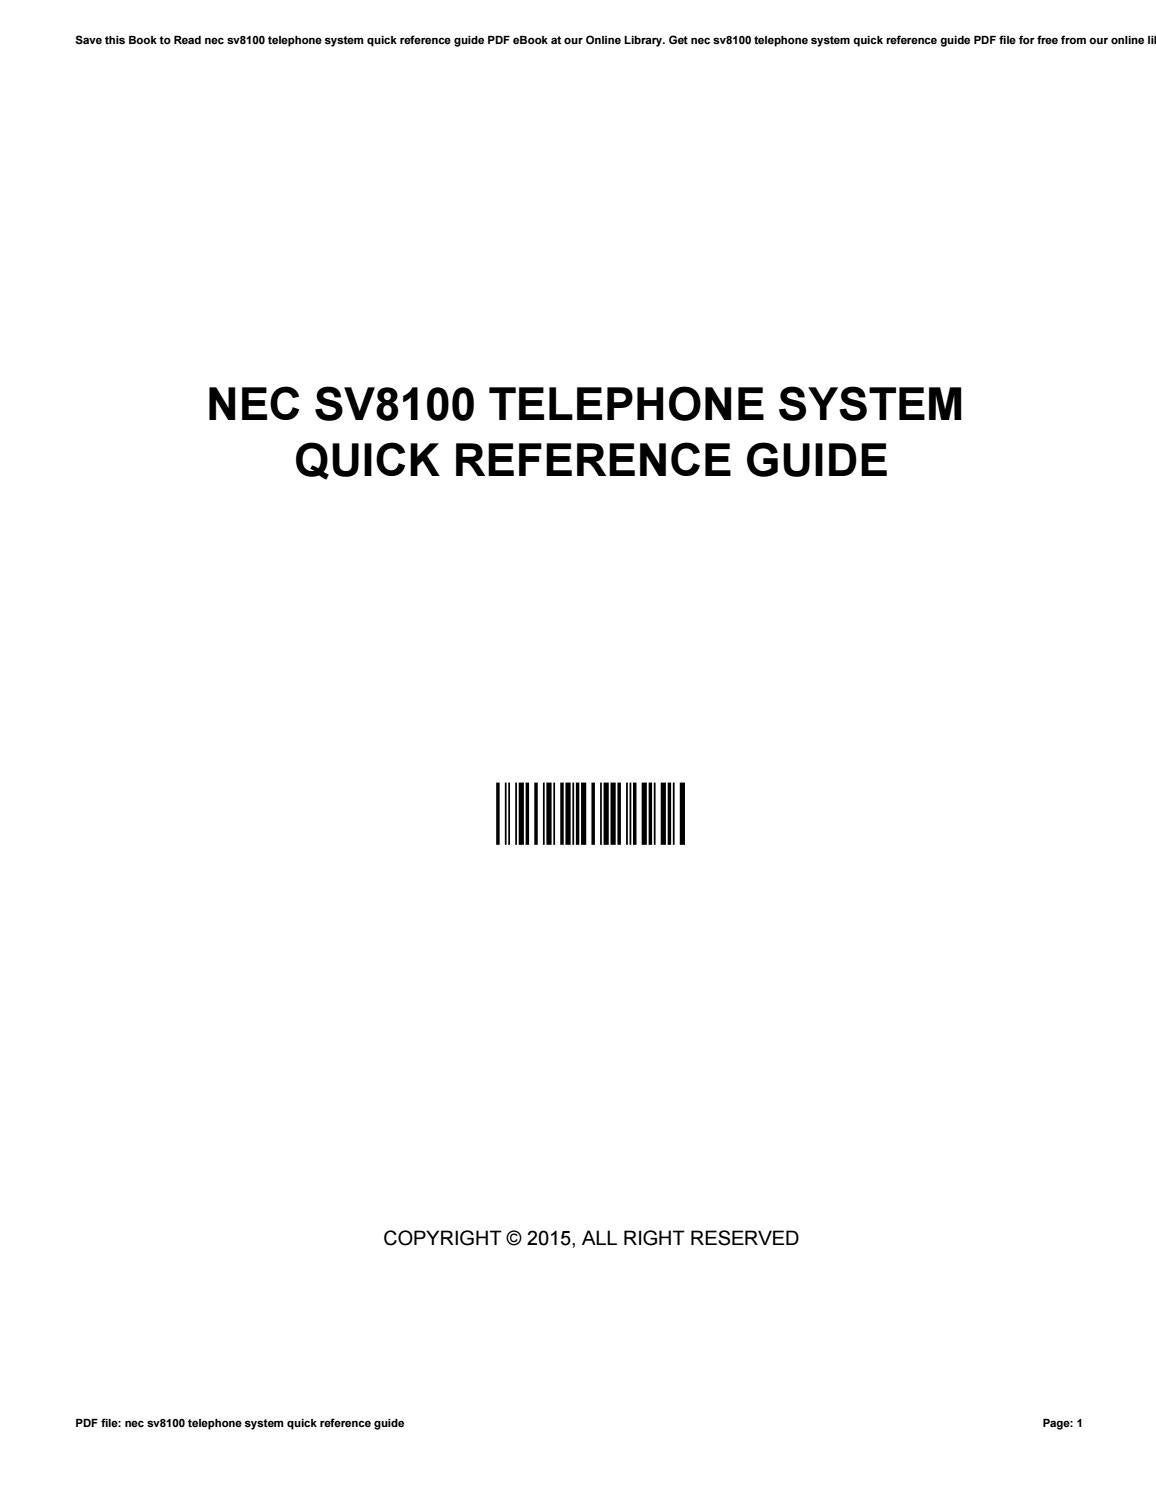 Nec sv8100 telephone system quick reference guide by ClarenceDunn3399 -  issuu